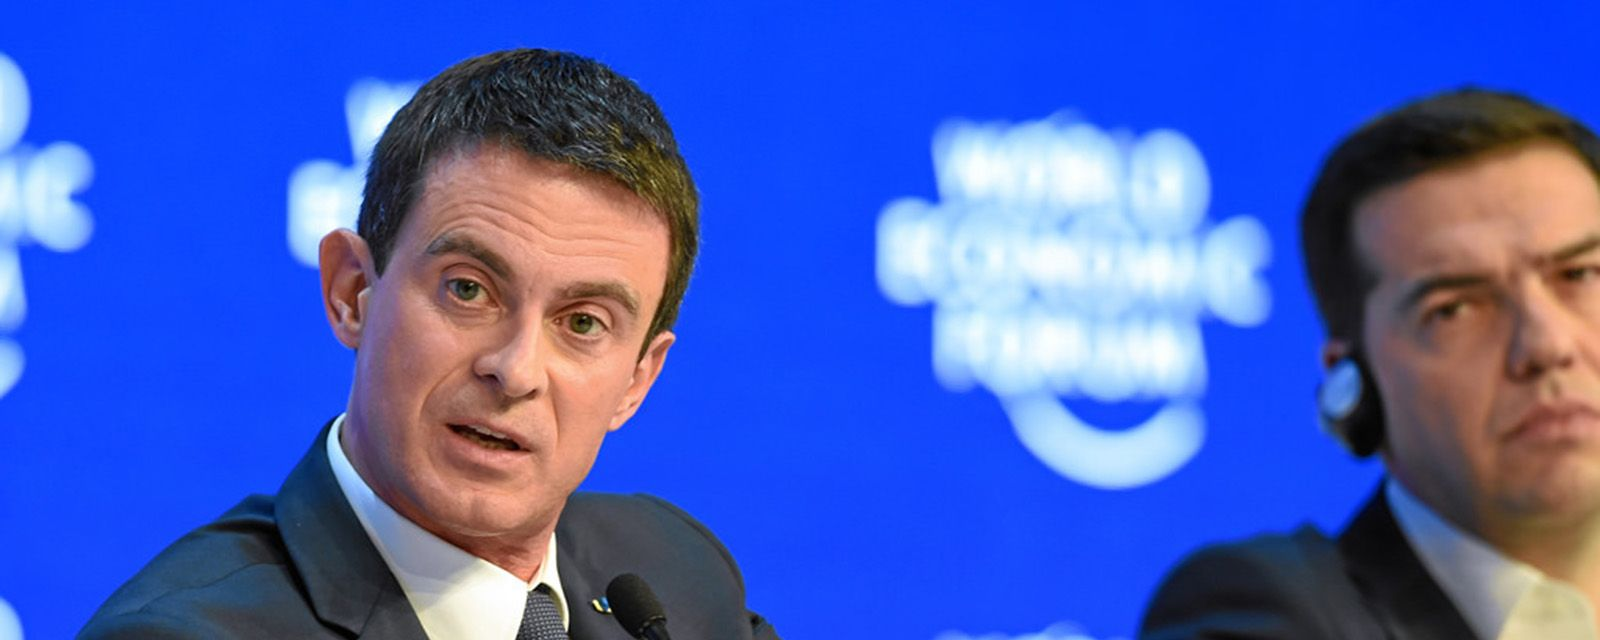 FORMER FRENCH PM: ATTACK ON KURDS IS ATTACK ON EUROPE